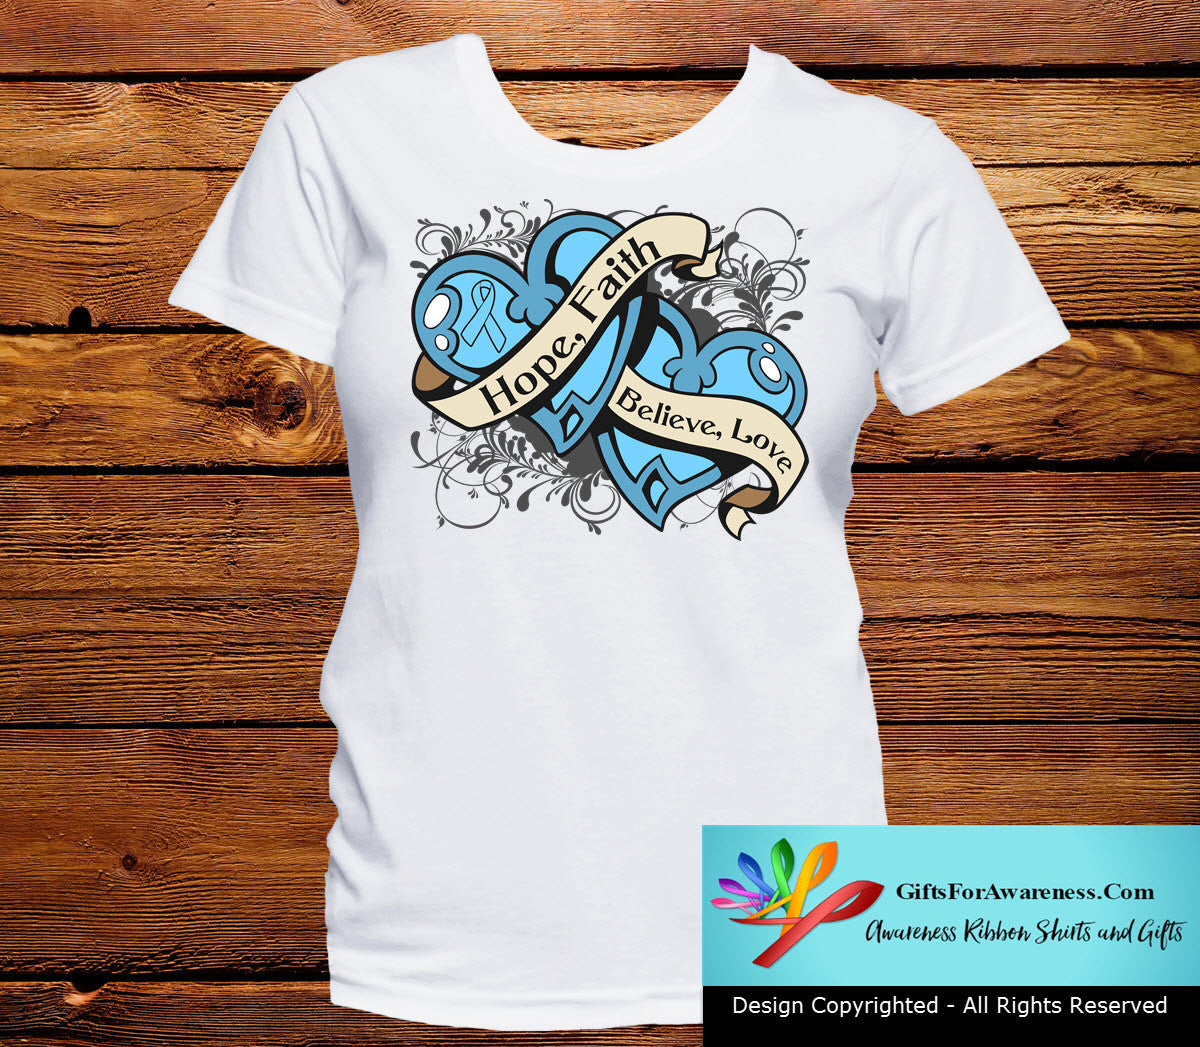 Prostate Cancer Hope Believe Faith Love Shirts - GiftsForAwareness